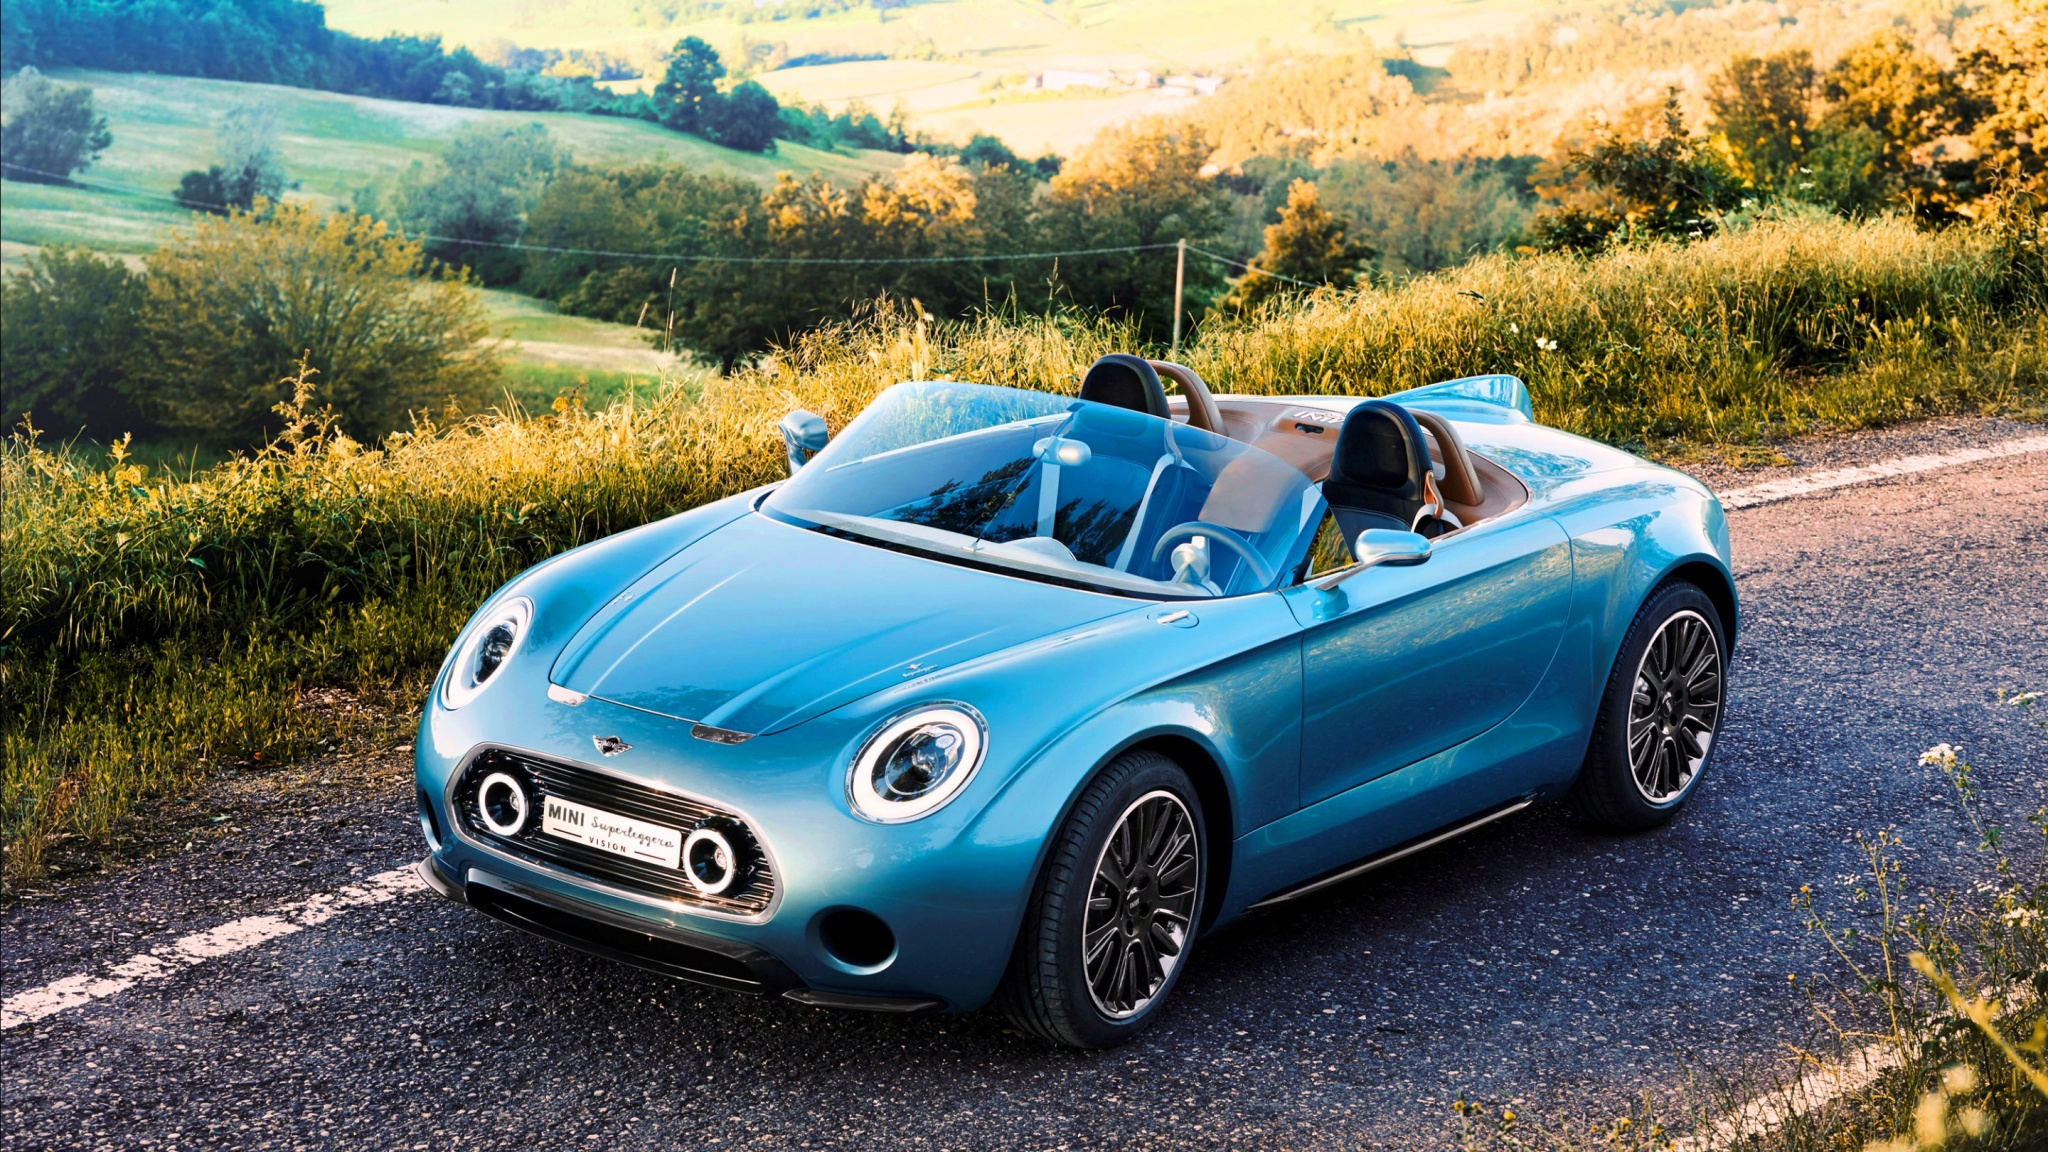 MINI Superleggera Vision 2014